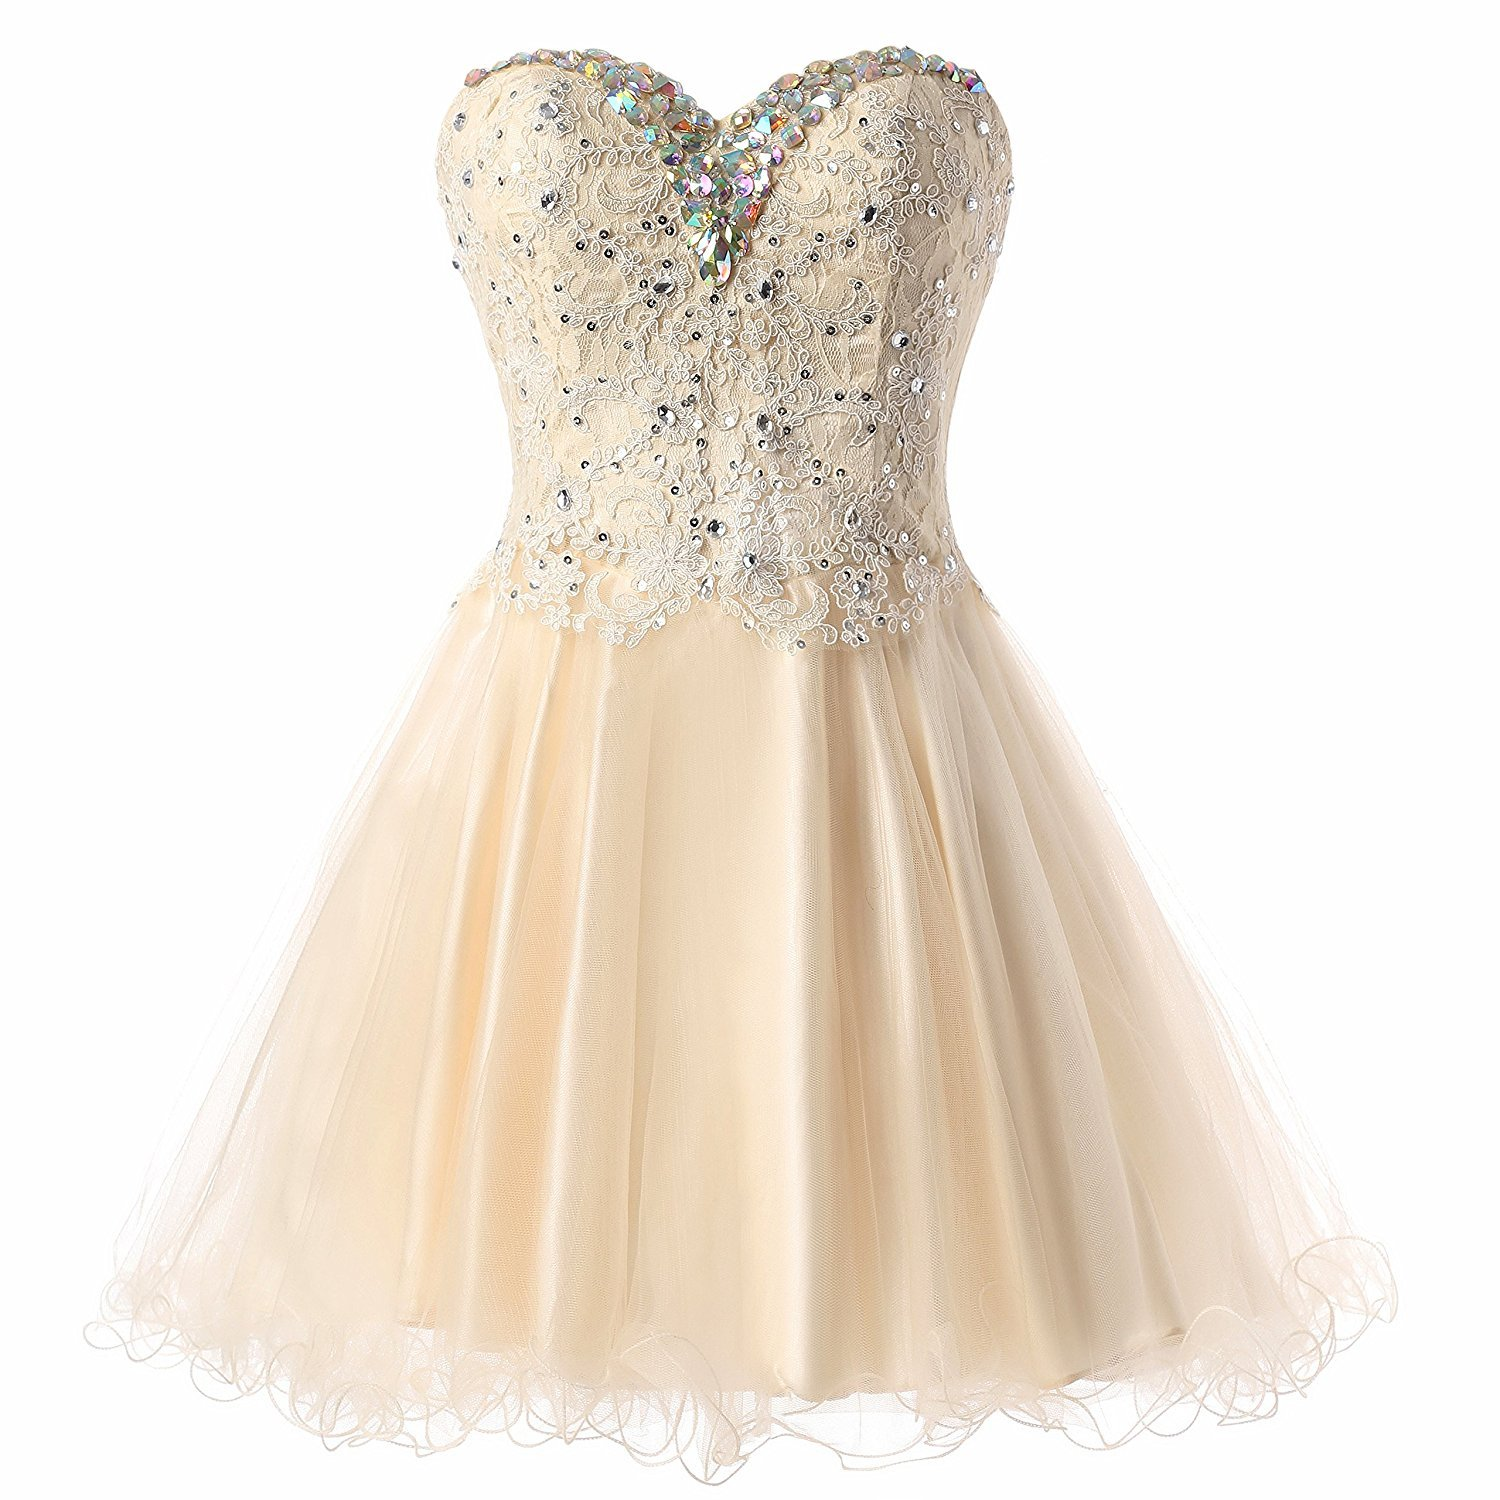 Primary image for Lovely Short A Line Sweetheart Tulle Homecoming Dresses Lace Beading Prom Gown